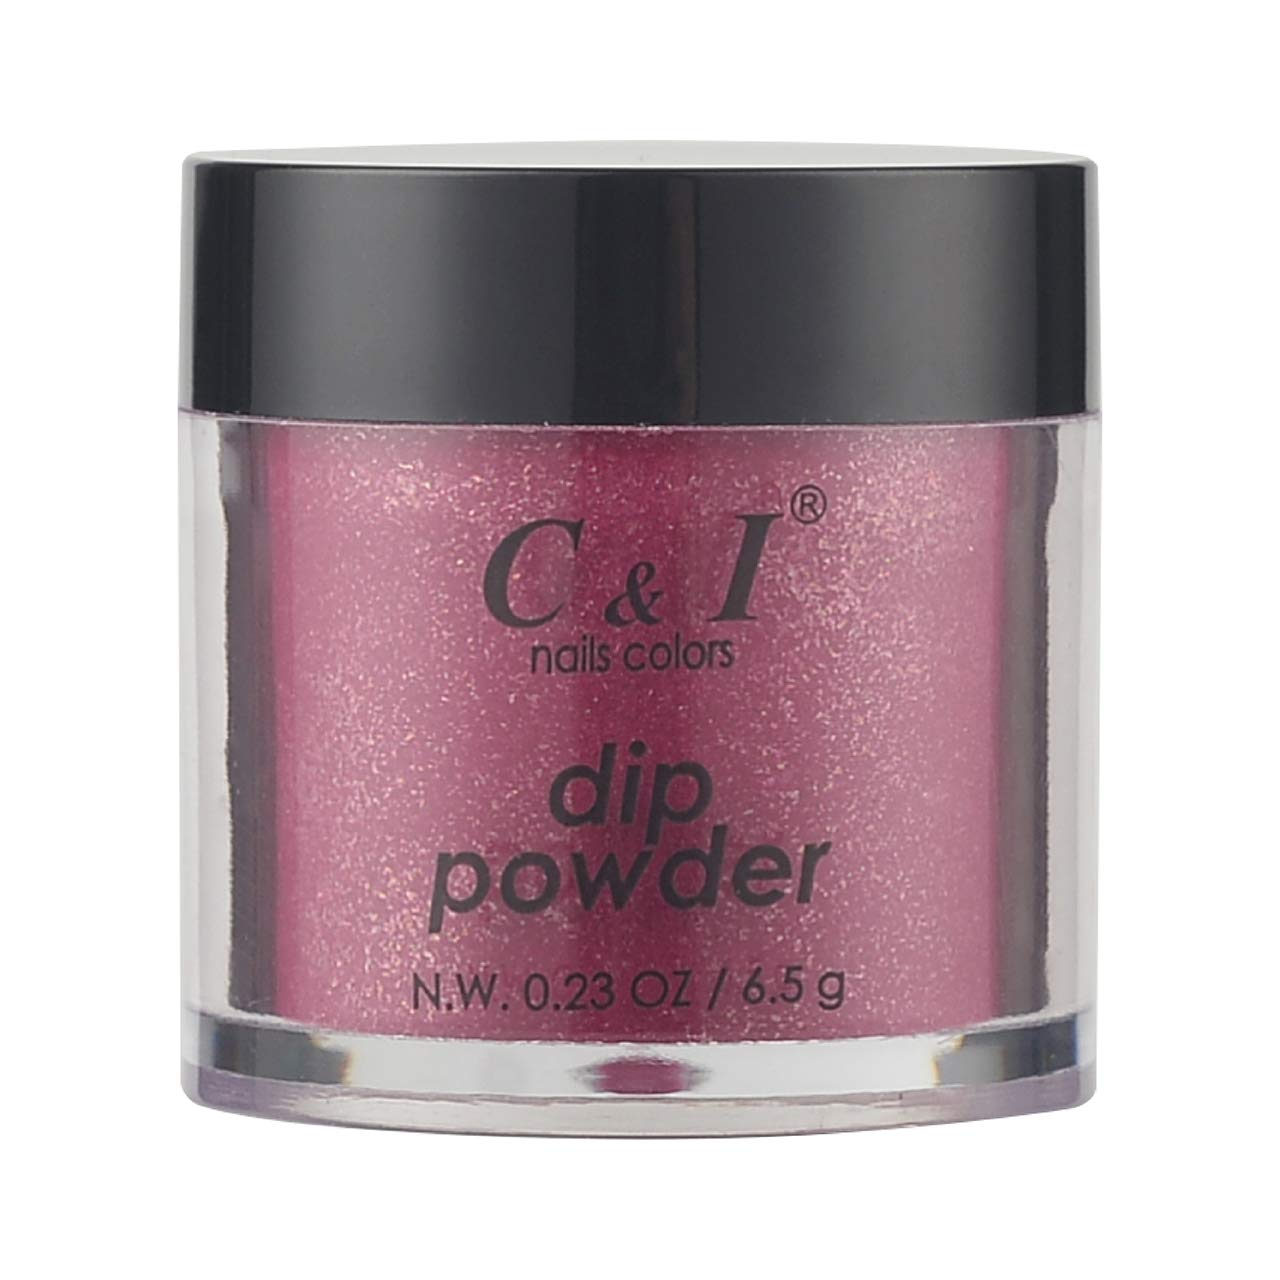 C & I Dipping Powder, Nail Colors, Gel Effect, Color # 65 Ruby, 0.23 oz, 6.5 g, Pearl Shine Color System (1 pc)